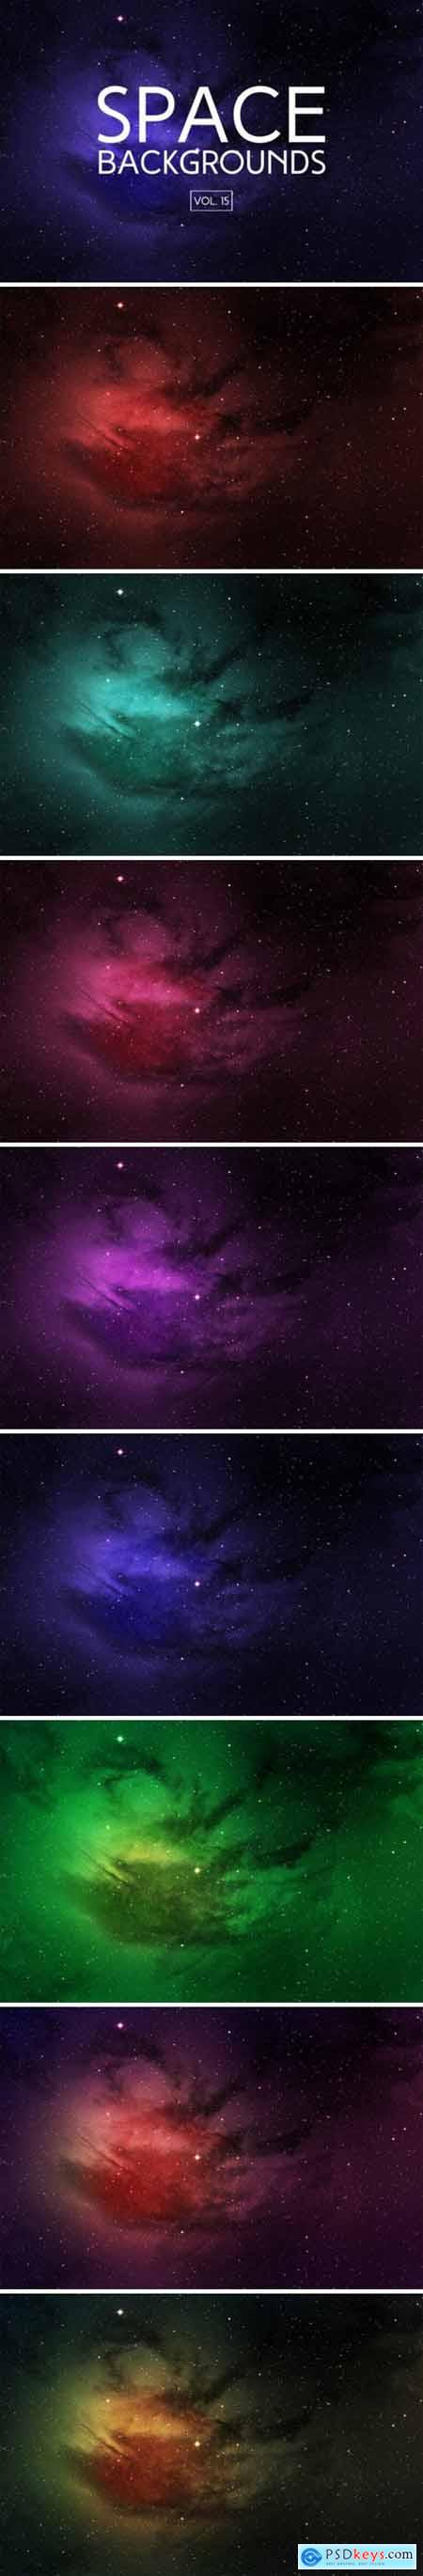 Space Backgrounds Vol.15